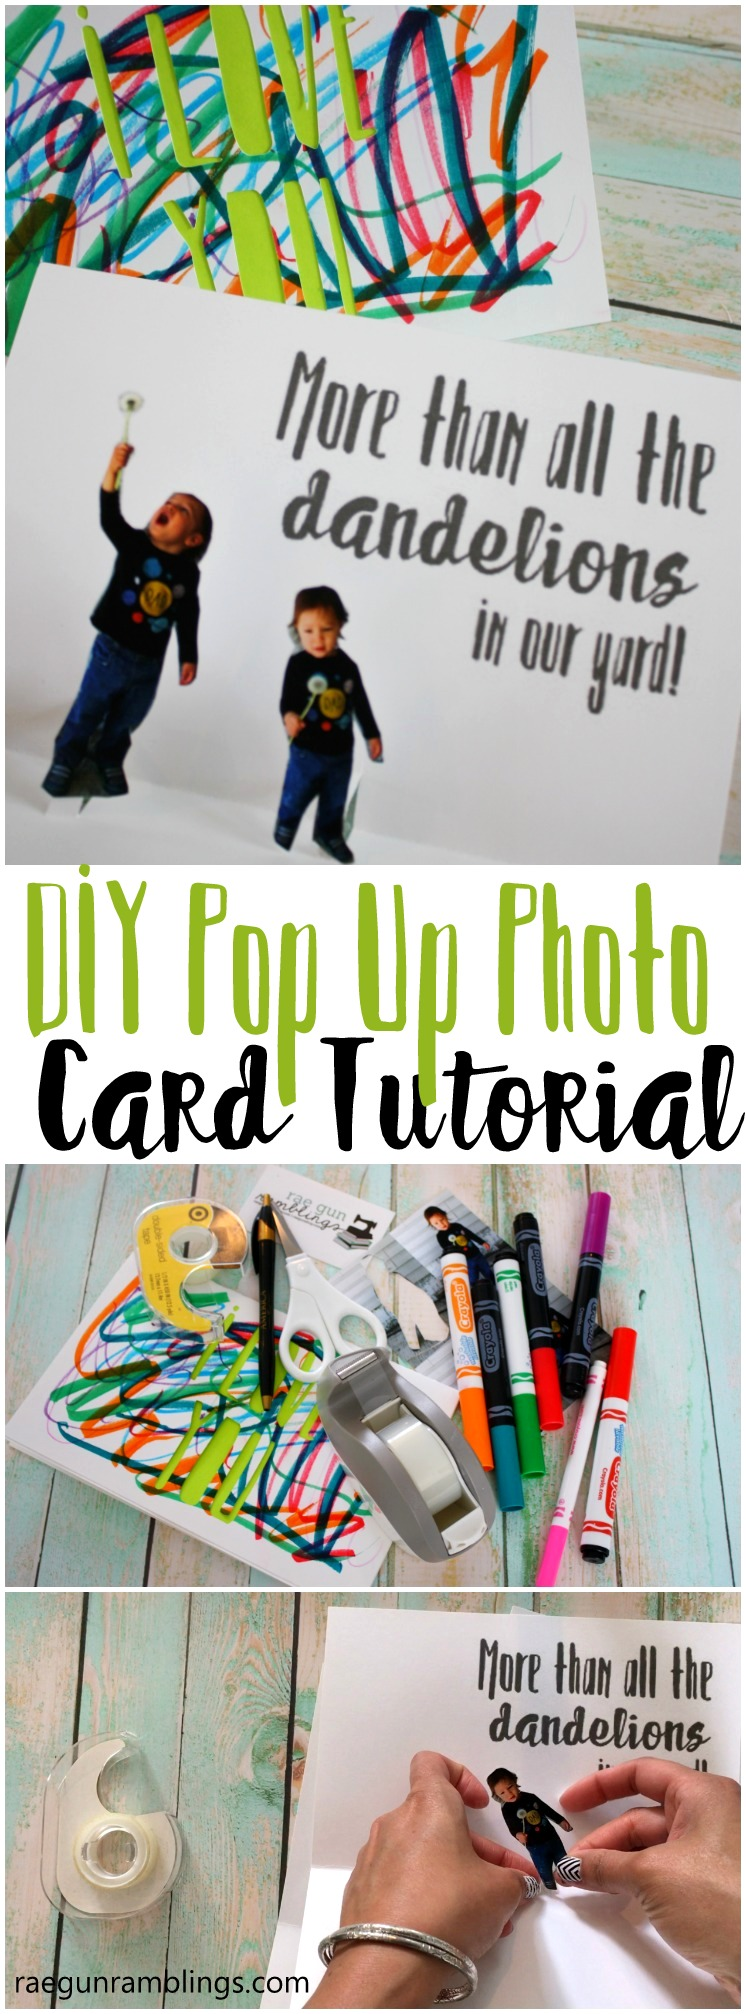 how to make a photo card in just 15 minutes. Cute DIY craft idea